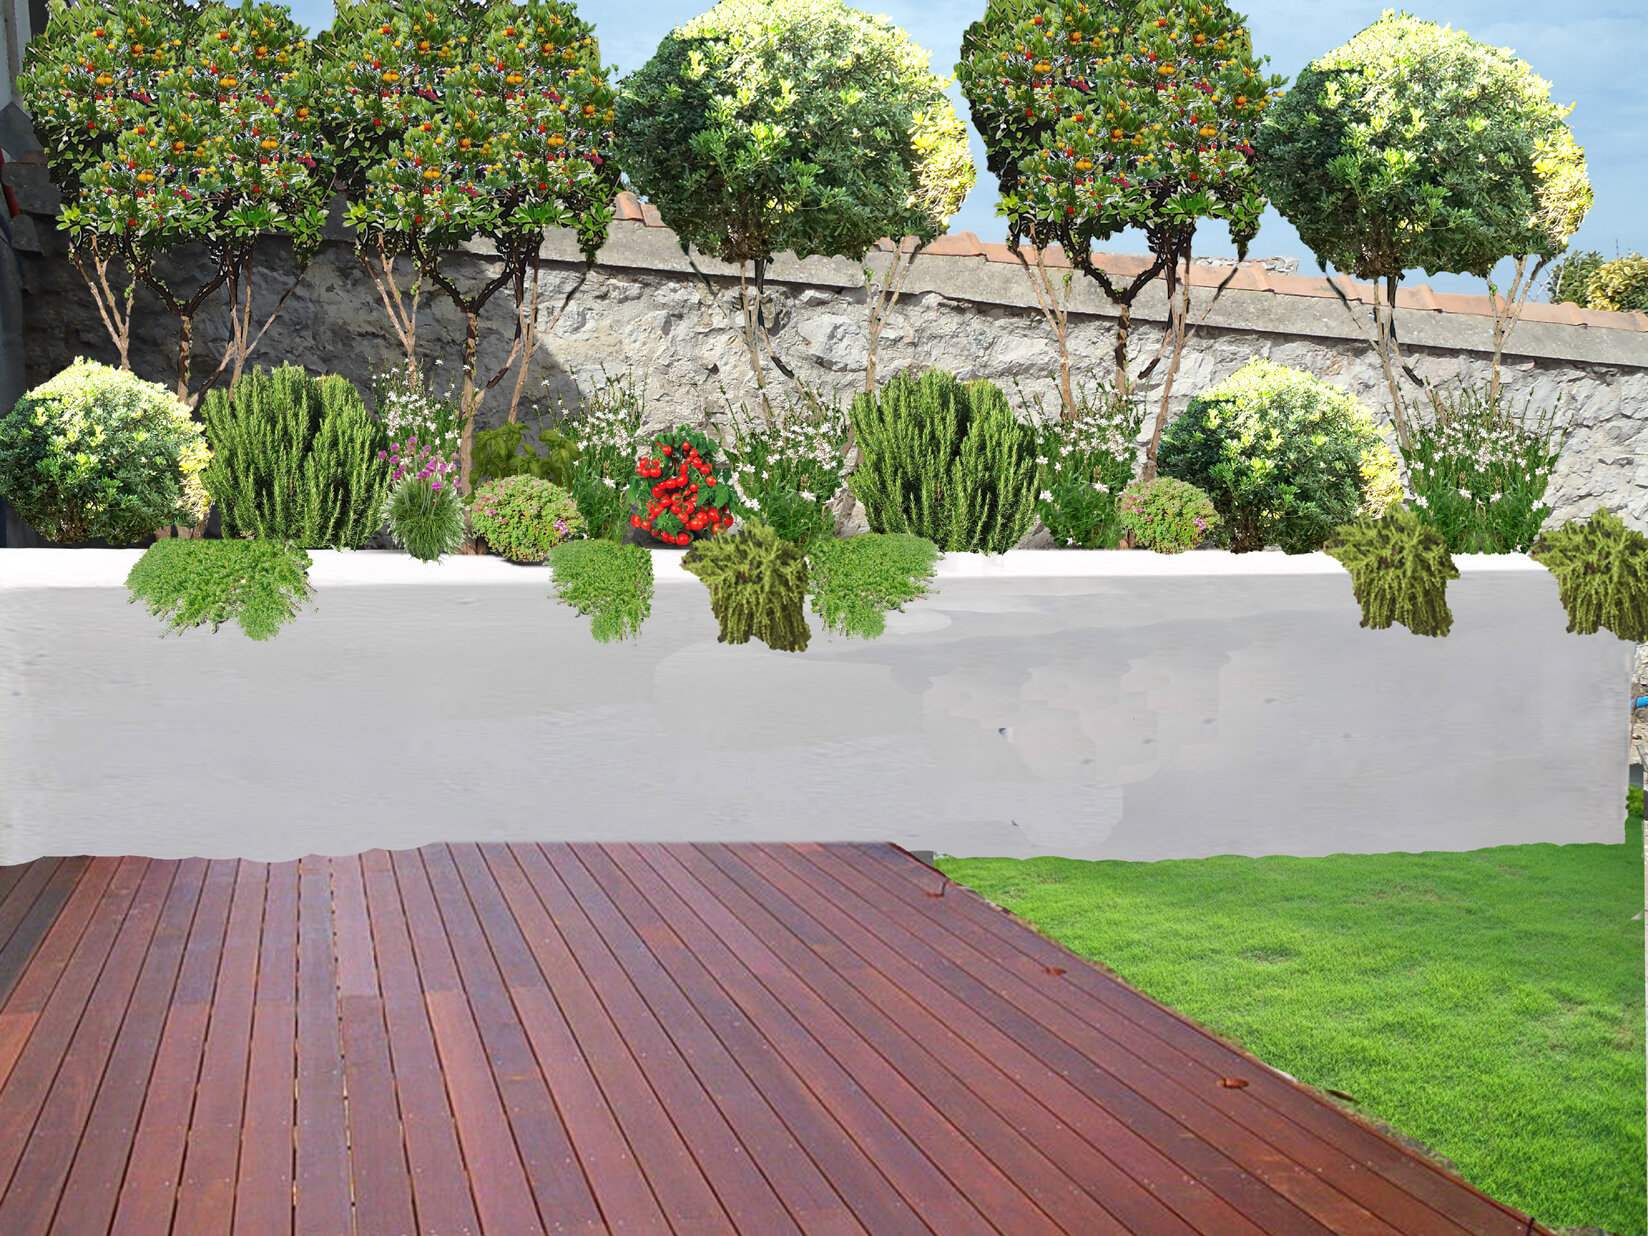 Jardin bord de mer marseille 13 maison contemporaine for Plantation de jardin